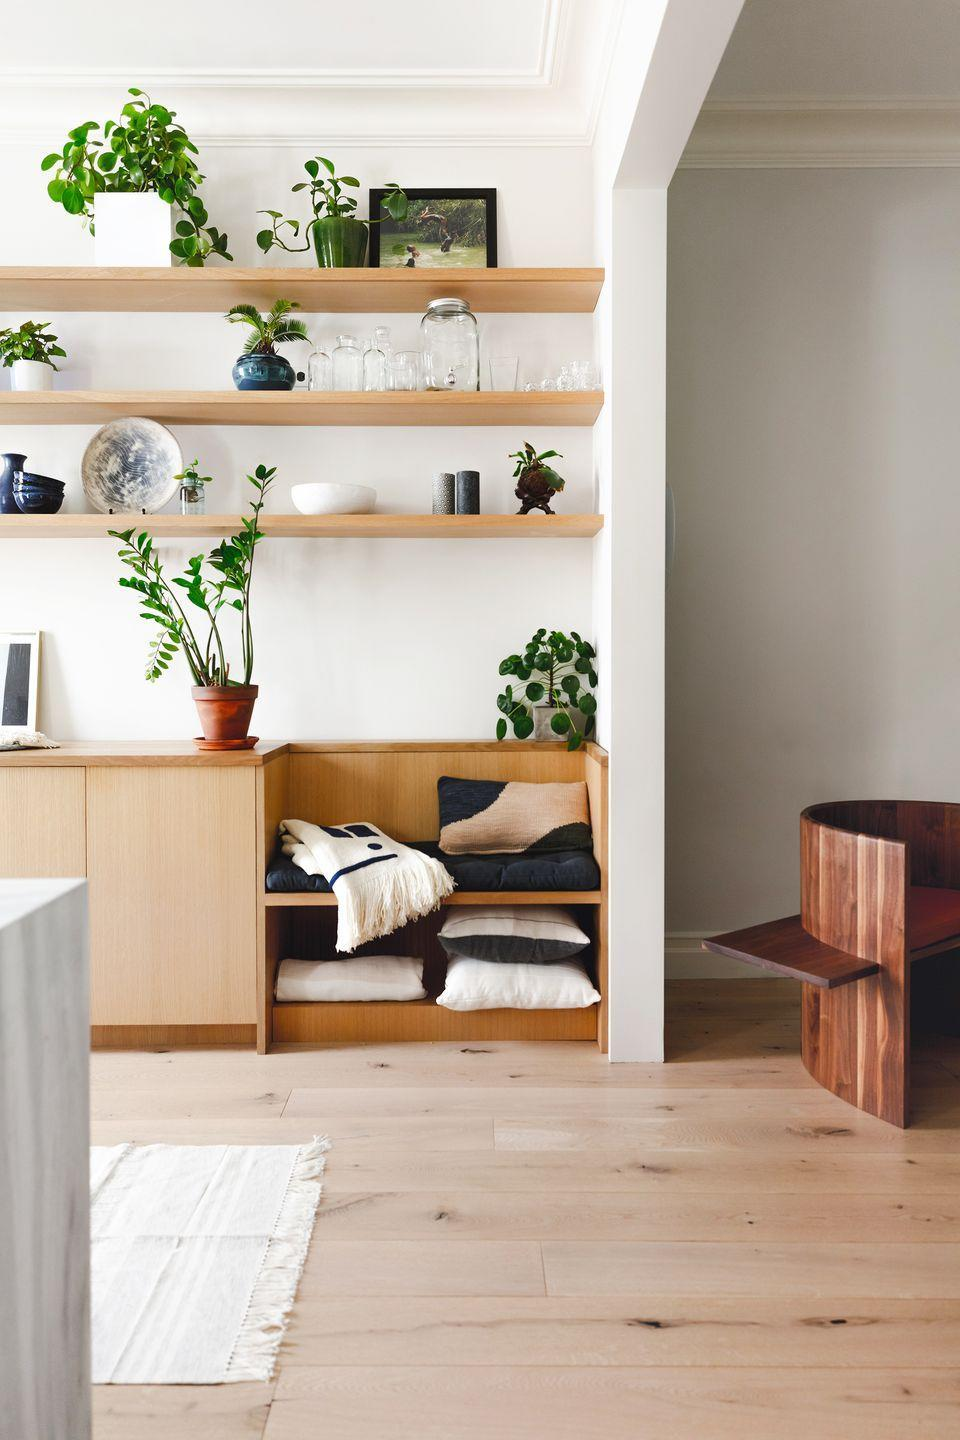 """<p>Floating shelves can be bold and over-the-top when decorated a certain way, but the emphasis on material and shape also makes them also a minimalists dream. In this space designed by <a href=""""https://www.shapelessstudio.com/"""" rel=""""nofollow noopener"""" target=""""_blank"""" data-ylk=""""slk:Shapeless Studio"""" class=""""link rapid-noclick-resp"""">Shapeless Studio</a>, the wall-to-wall floating shelves for make for a neutral, linear, and clean display—almost gallery-esque, yet still approachable and grounded. </p>"""